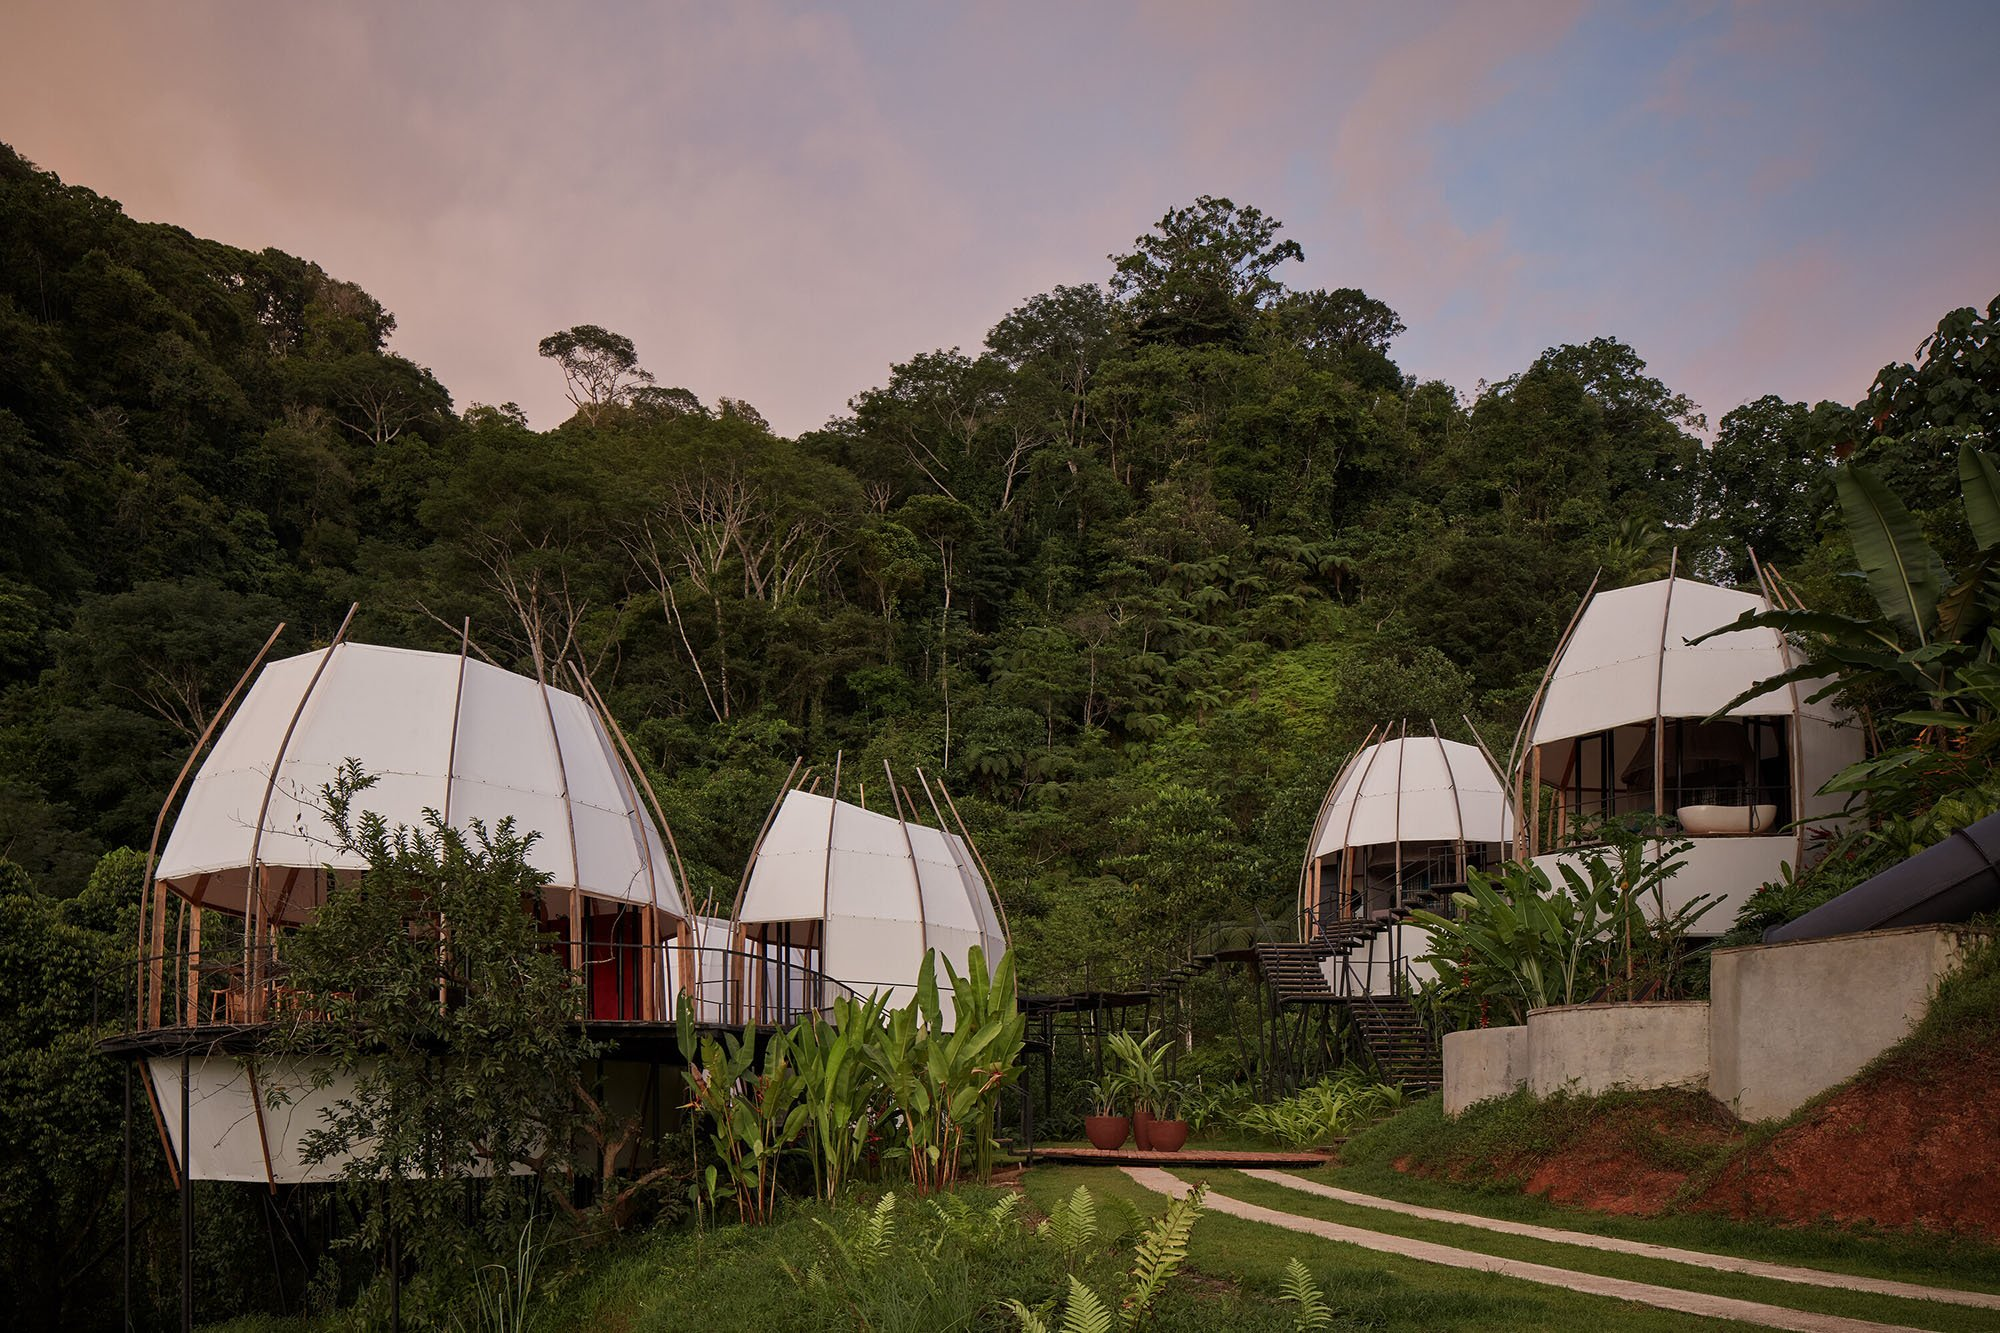 Coco luxury, relaxation, and adventure in the Costa Rican jungle